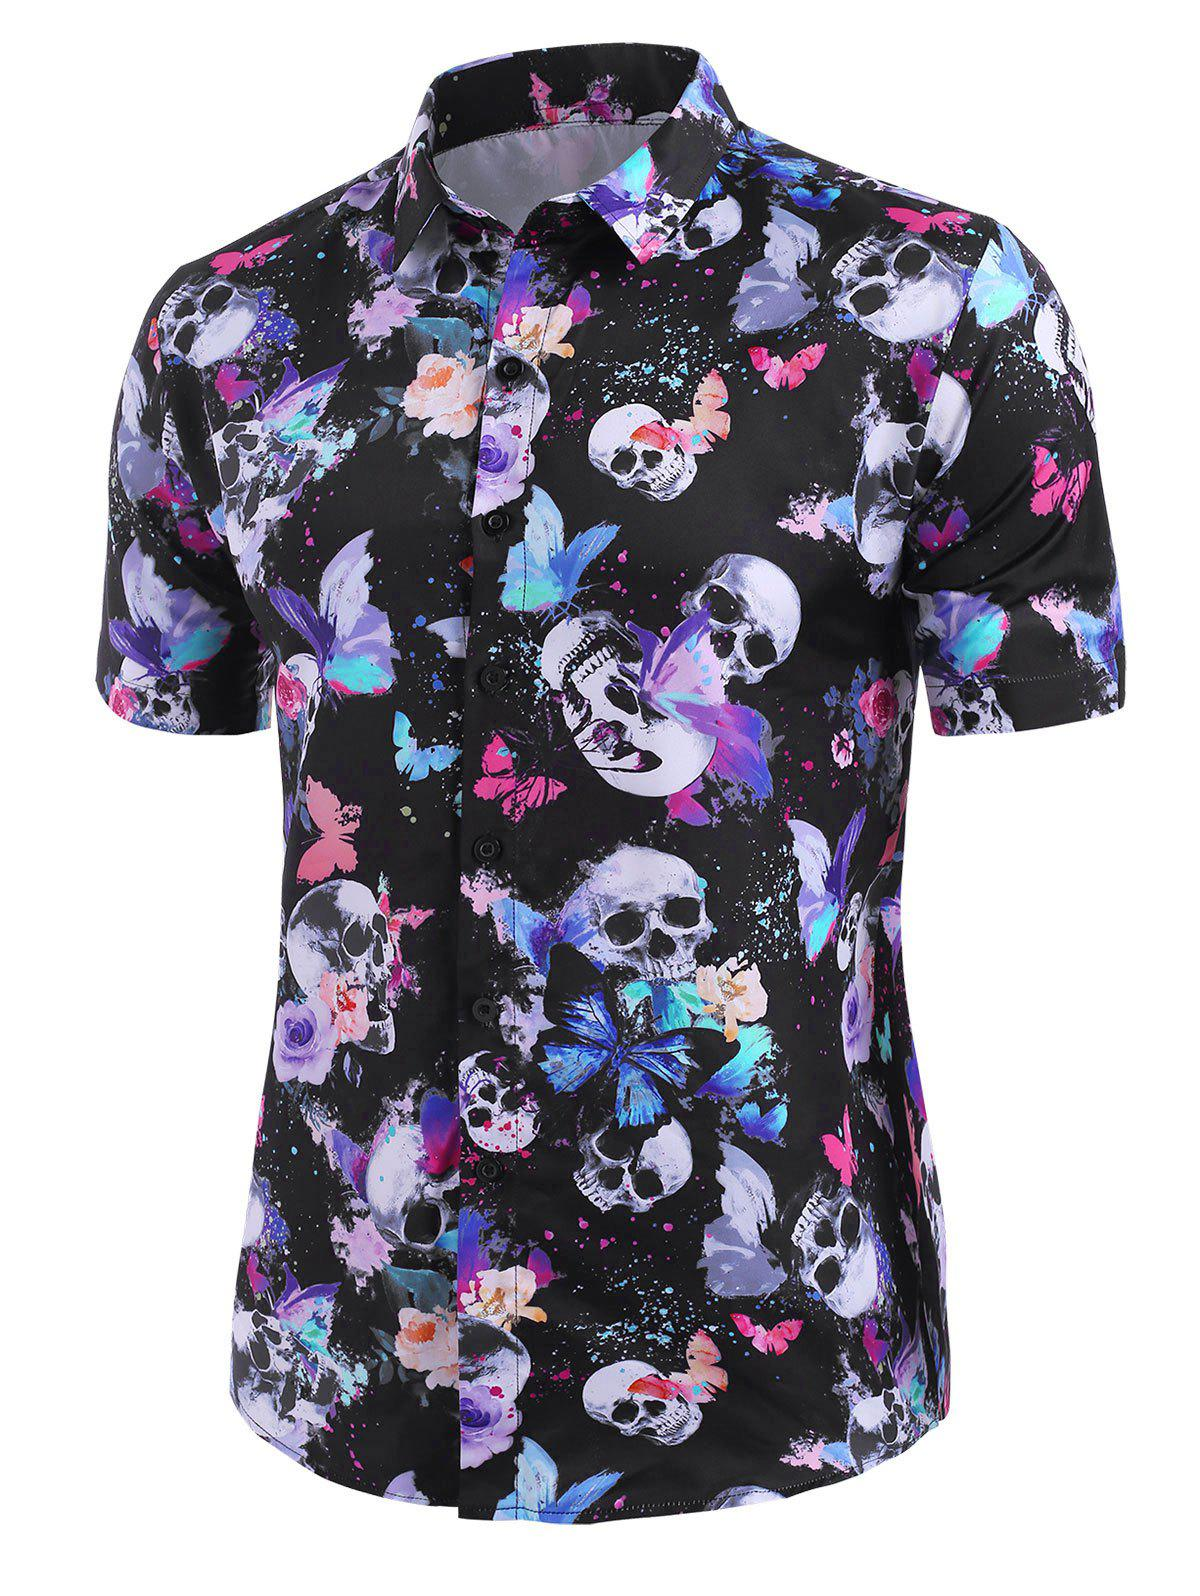 Unique Skull Butterfly Print Short Sleeve Button Up Shirt